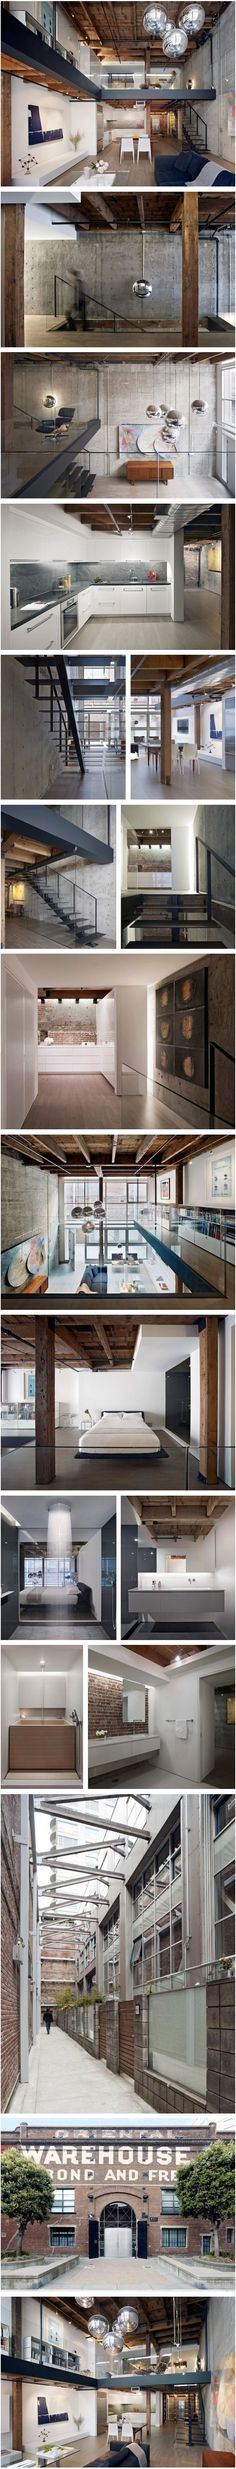 Renovated-Oriental-Warehouse-by-Edmonds-Lee-Architects